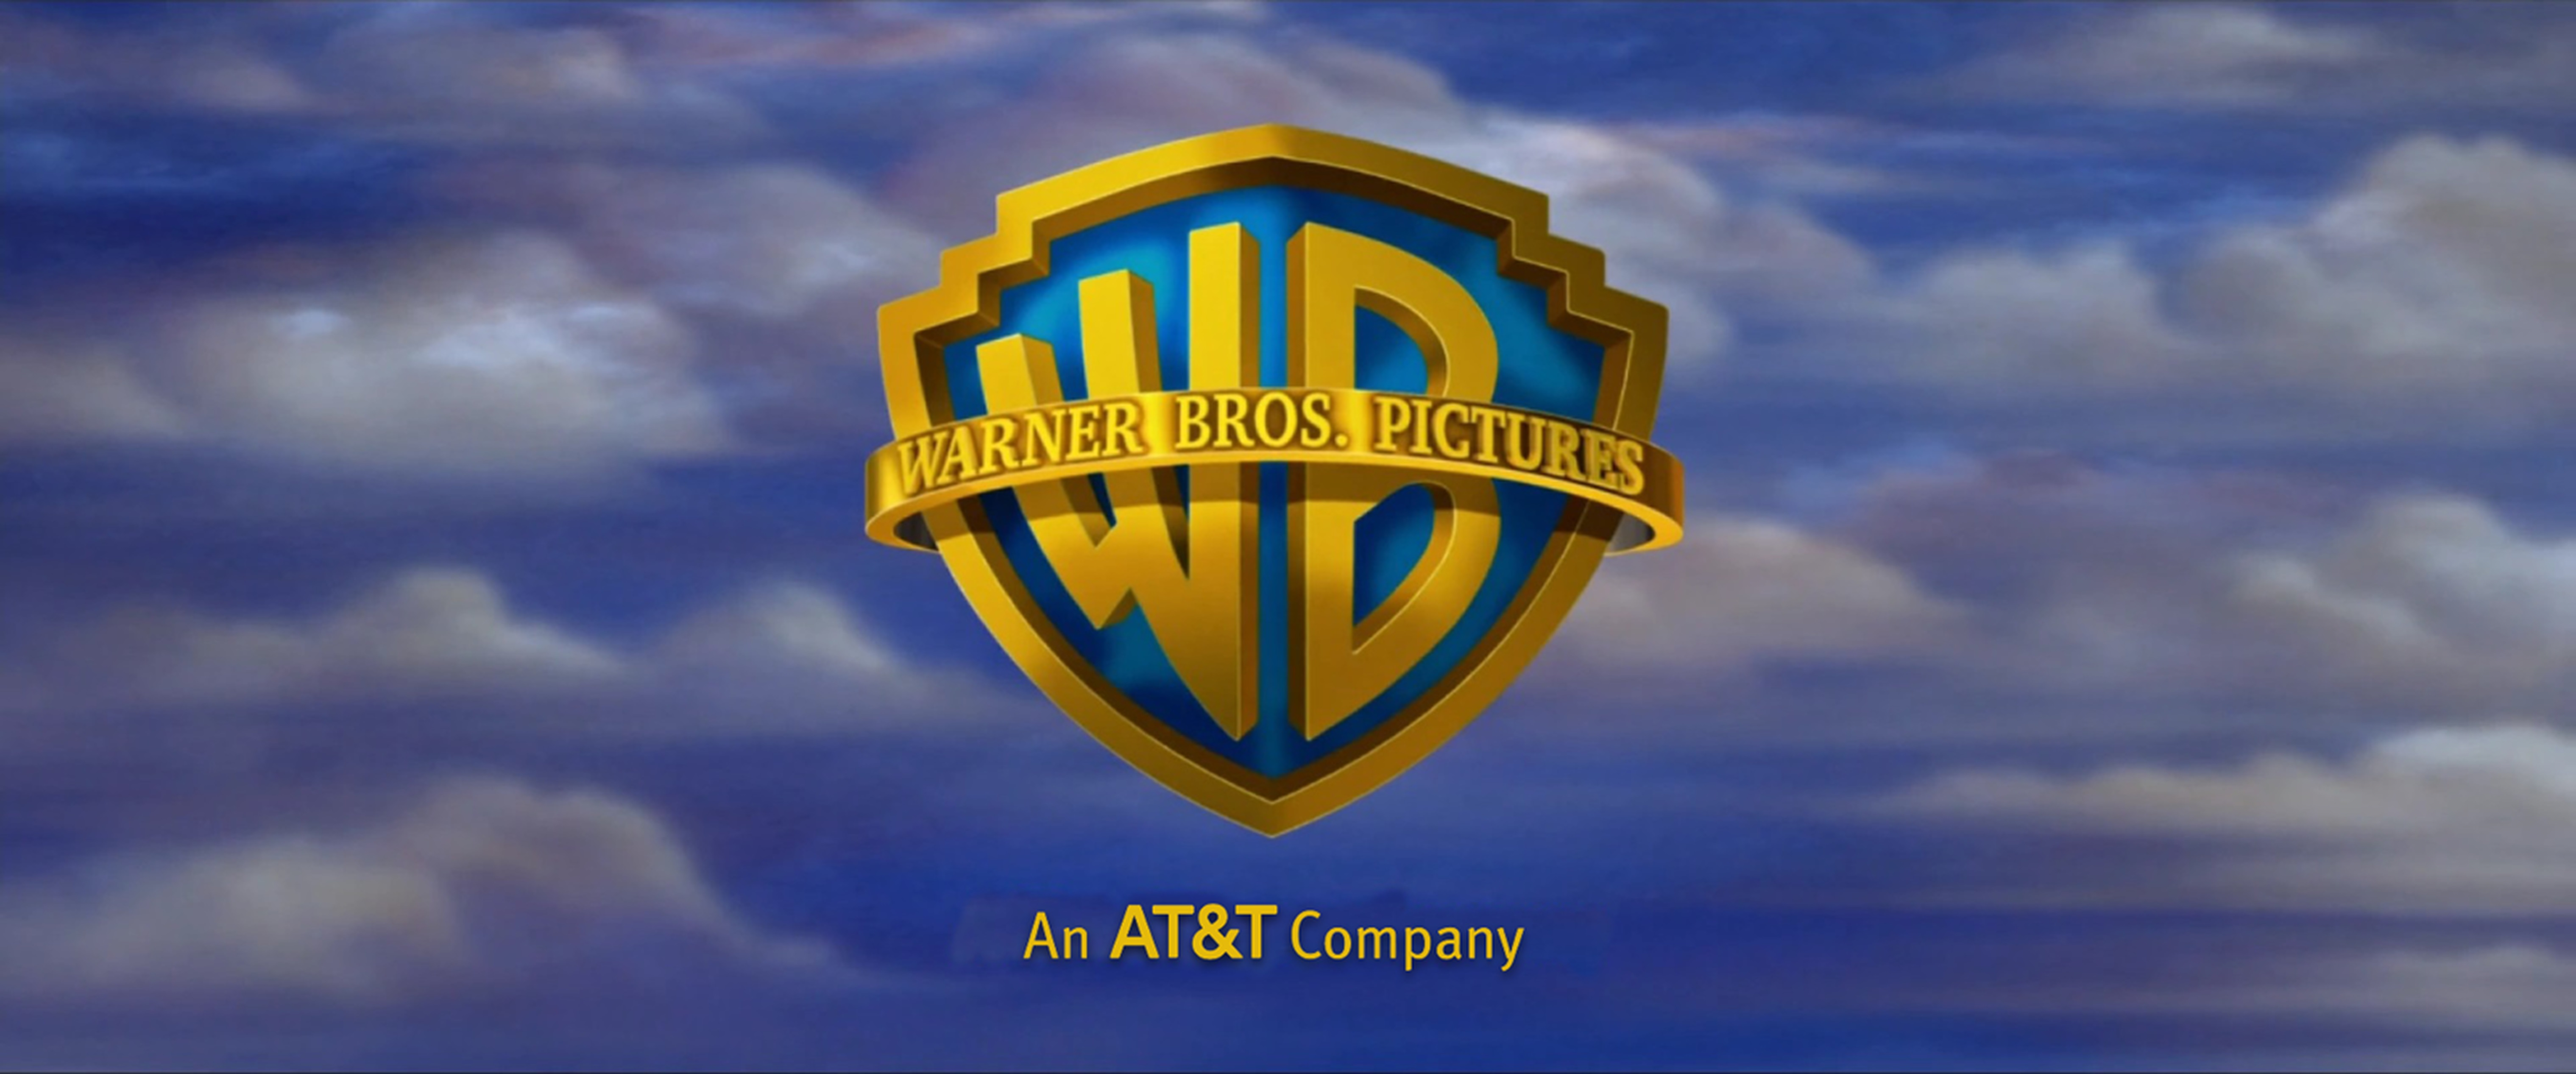 Warner Bros. Pictures with AT&T Byline.jpg